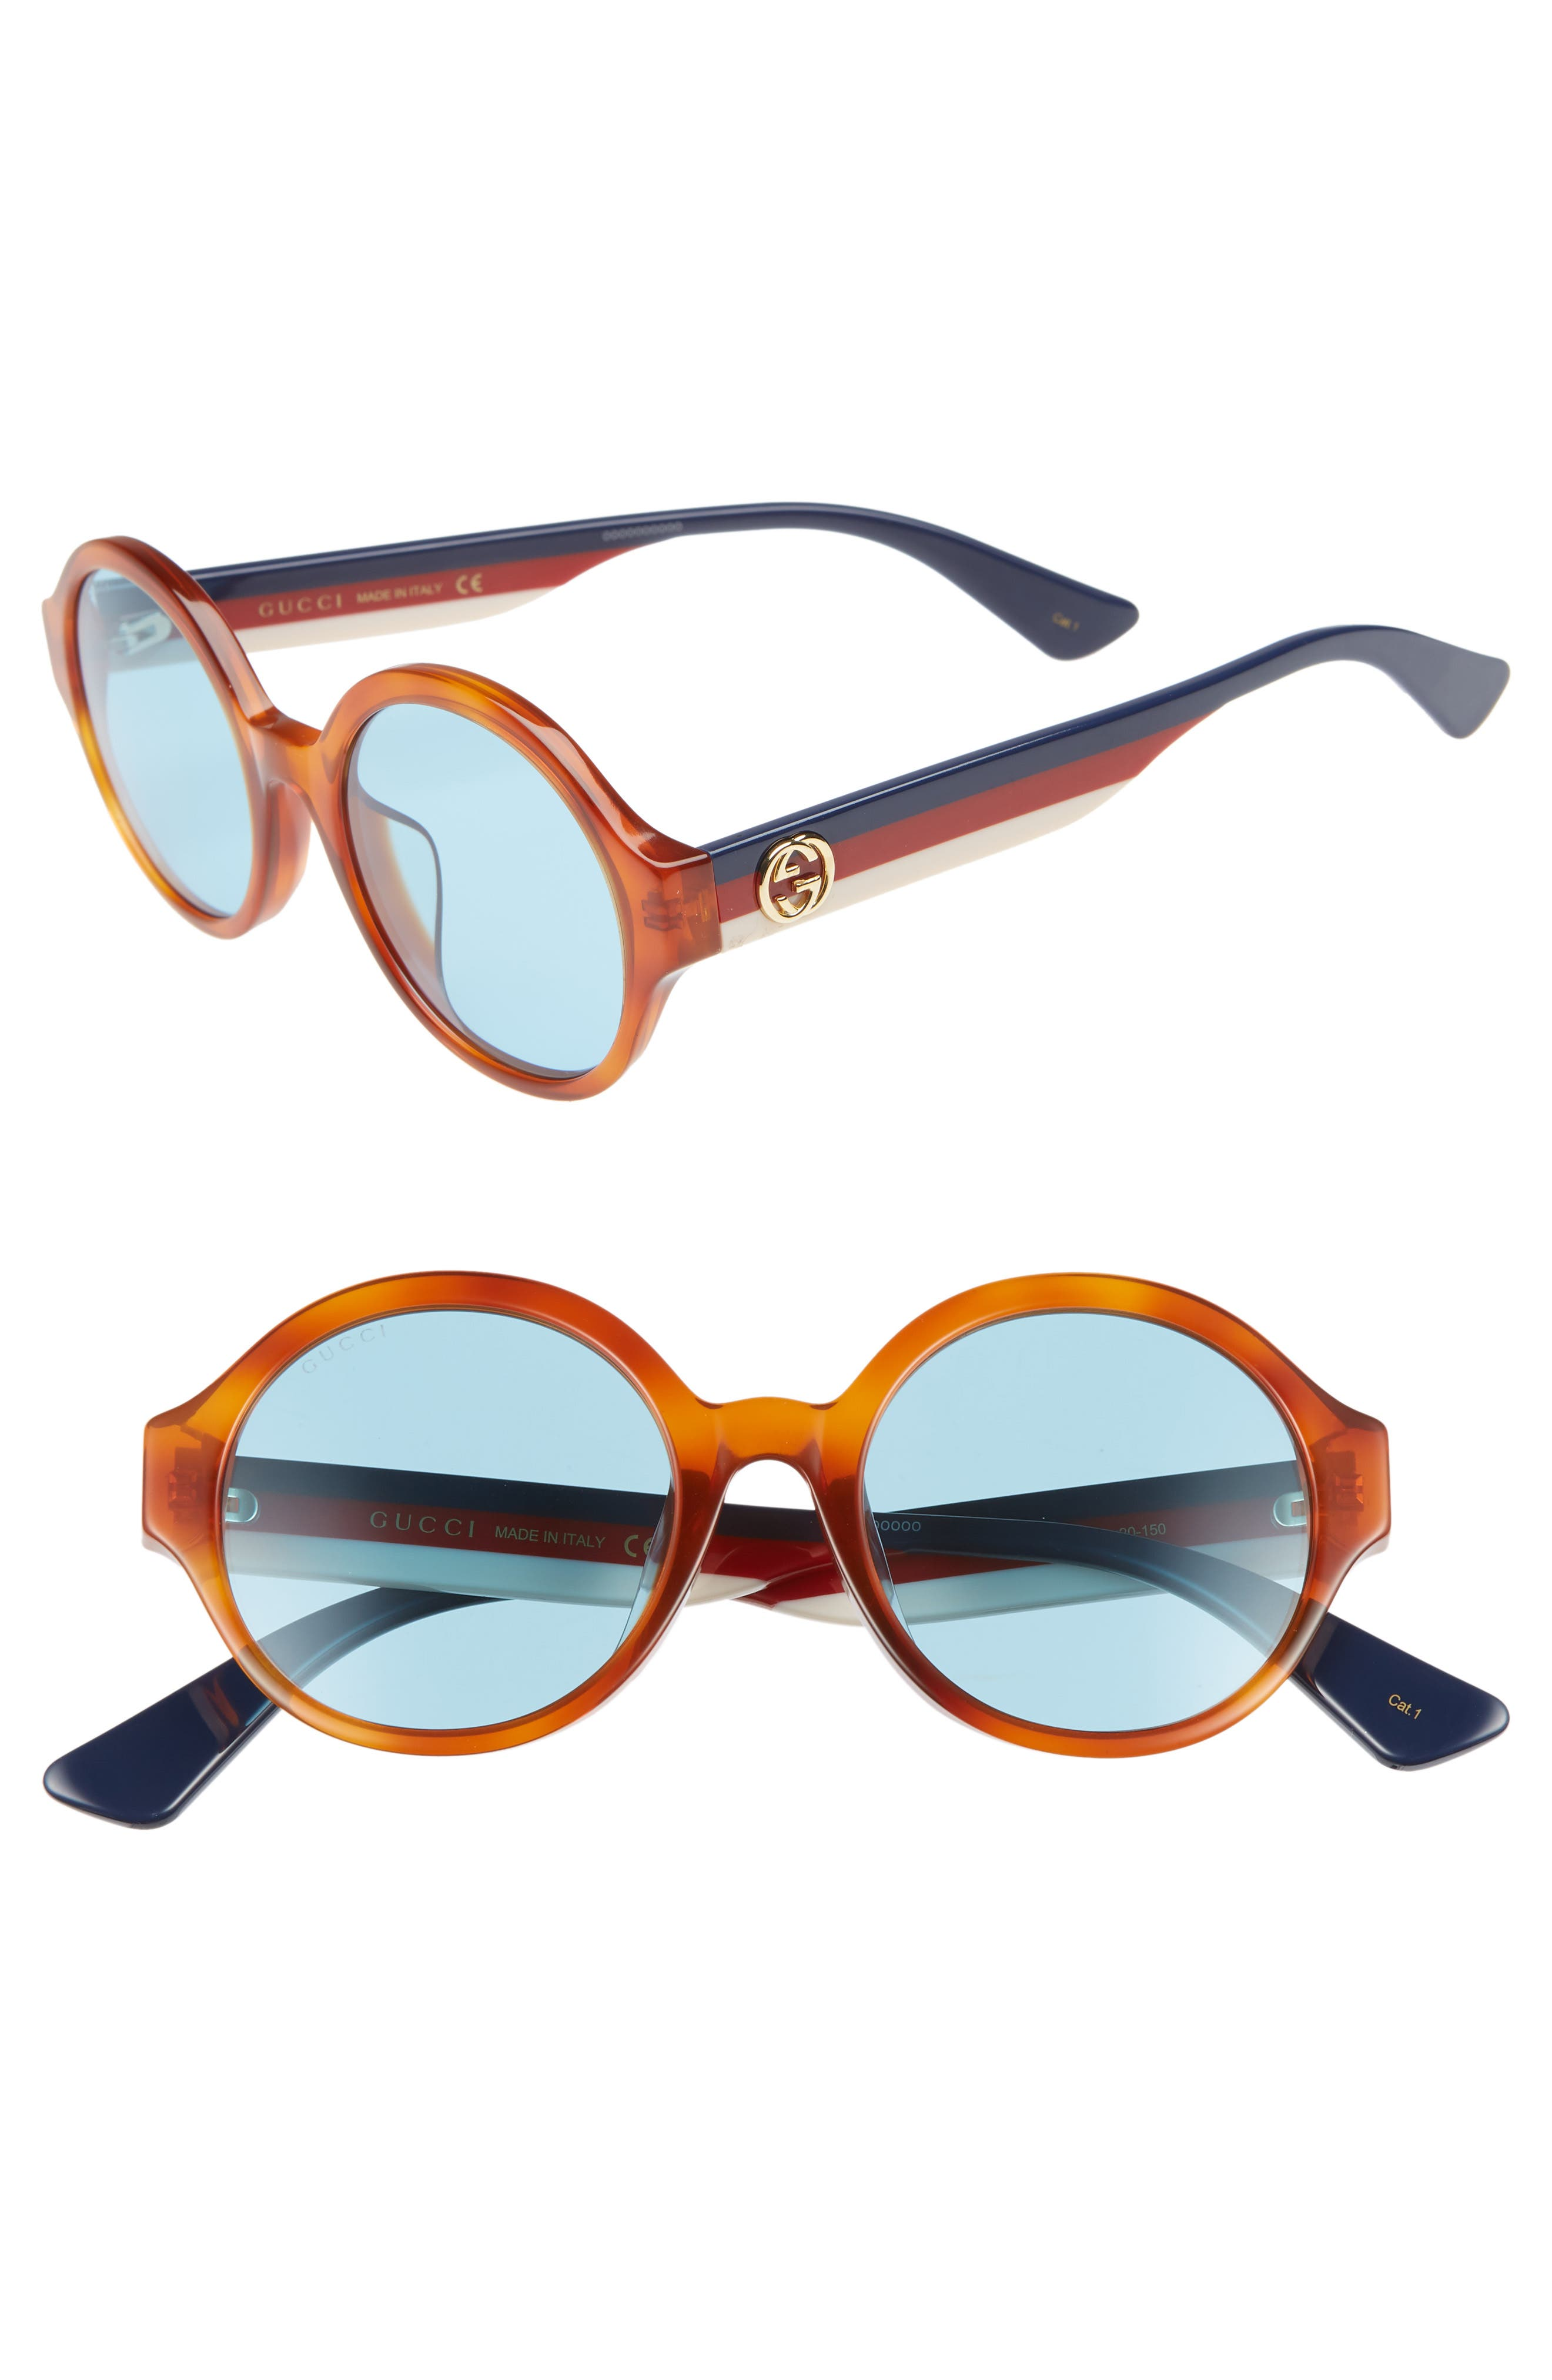 20486db5a3 Gucci Round Sunglasses for Women